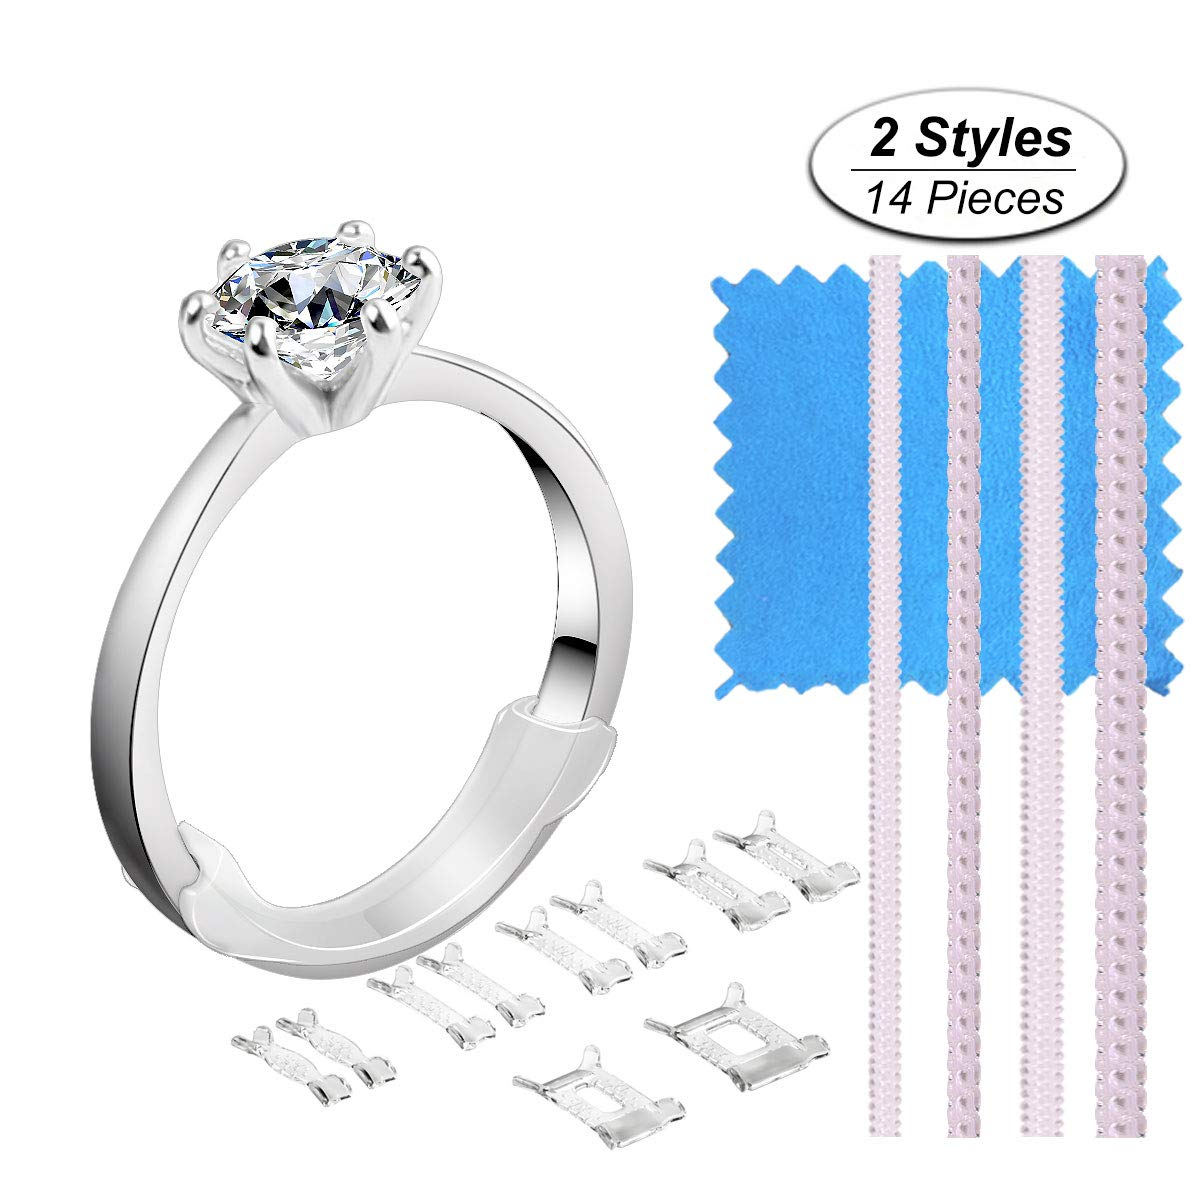 Ring Size Adjuster 2 Styles Invisible Ring Adjuster Sizer Reducer with Jewelry Polishing Cloth for Loosing Rings, 72+4+4 Pieces, 4 Colors eMigoo